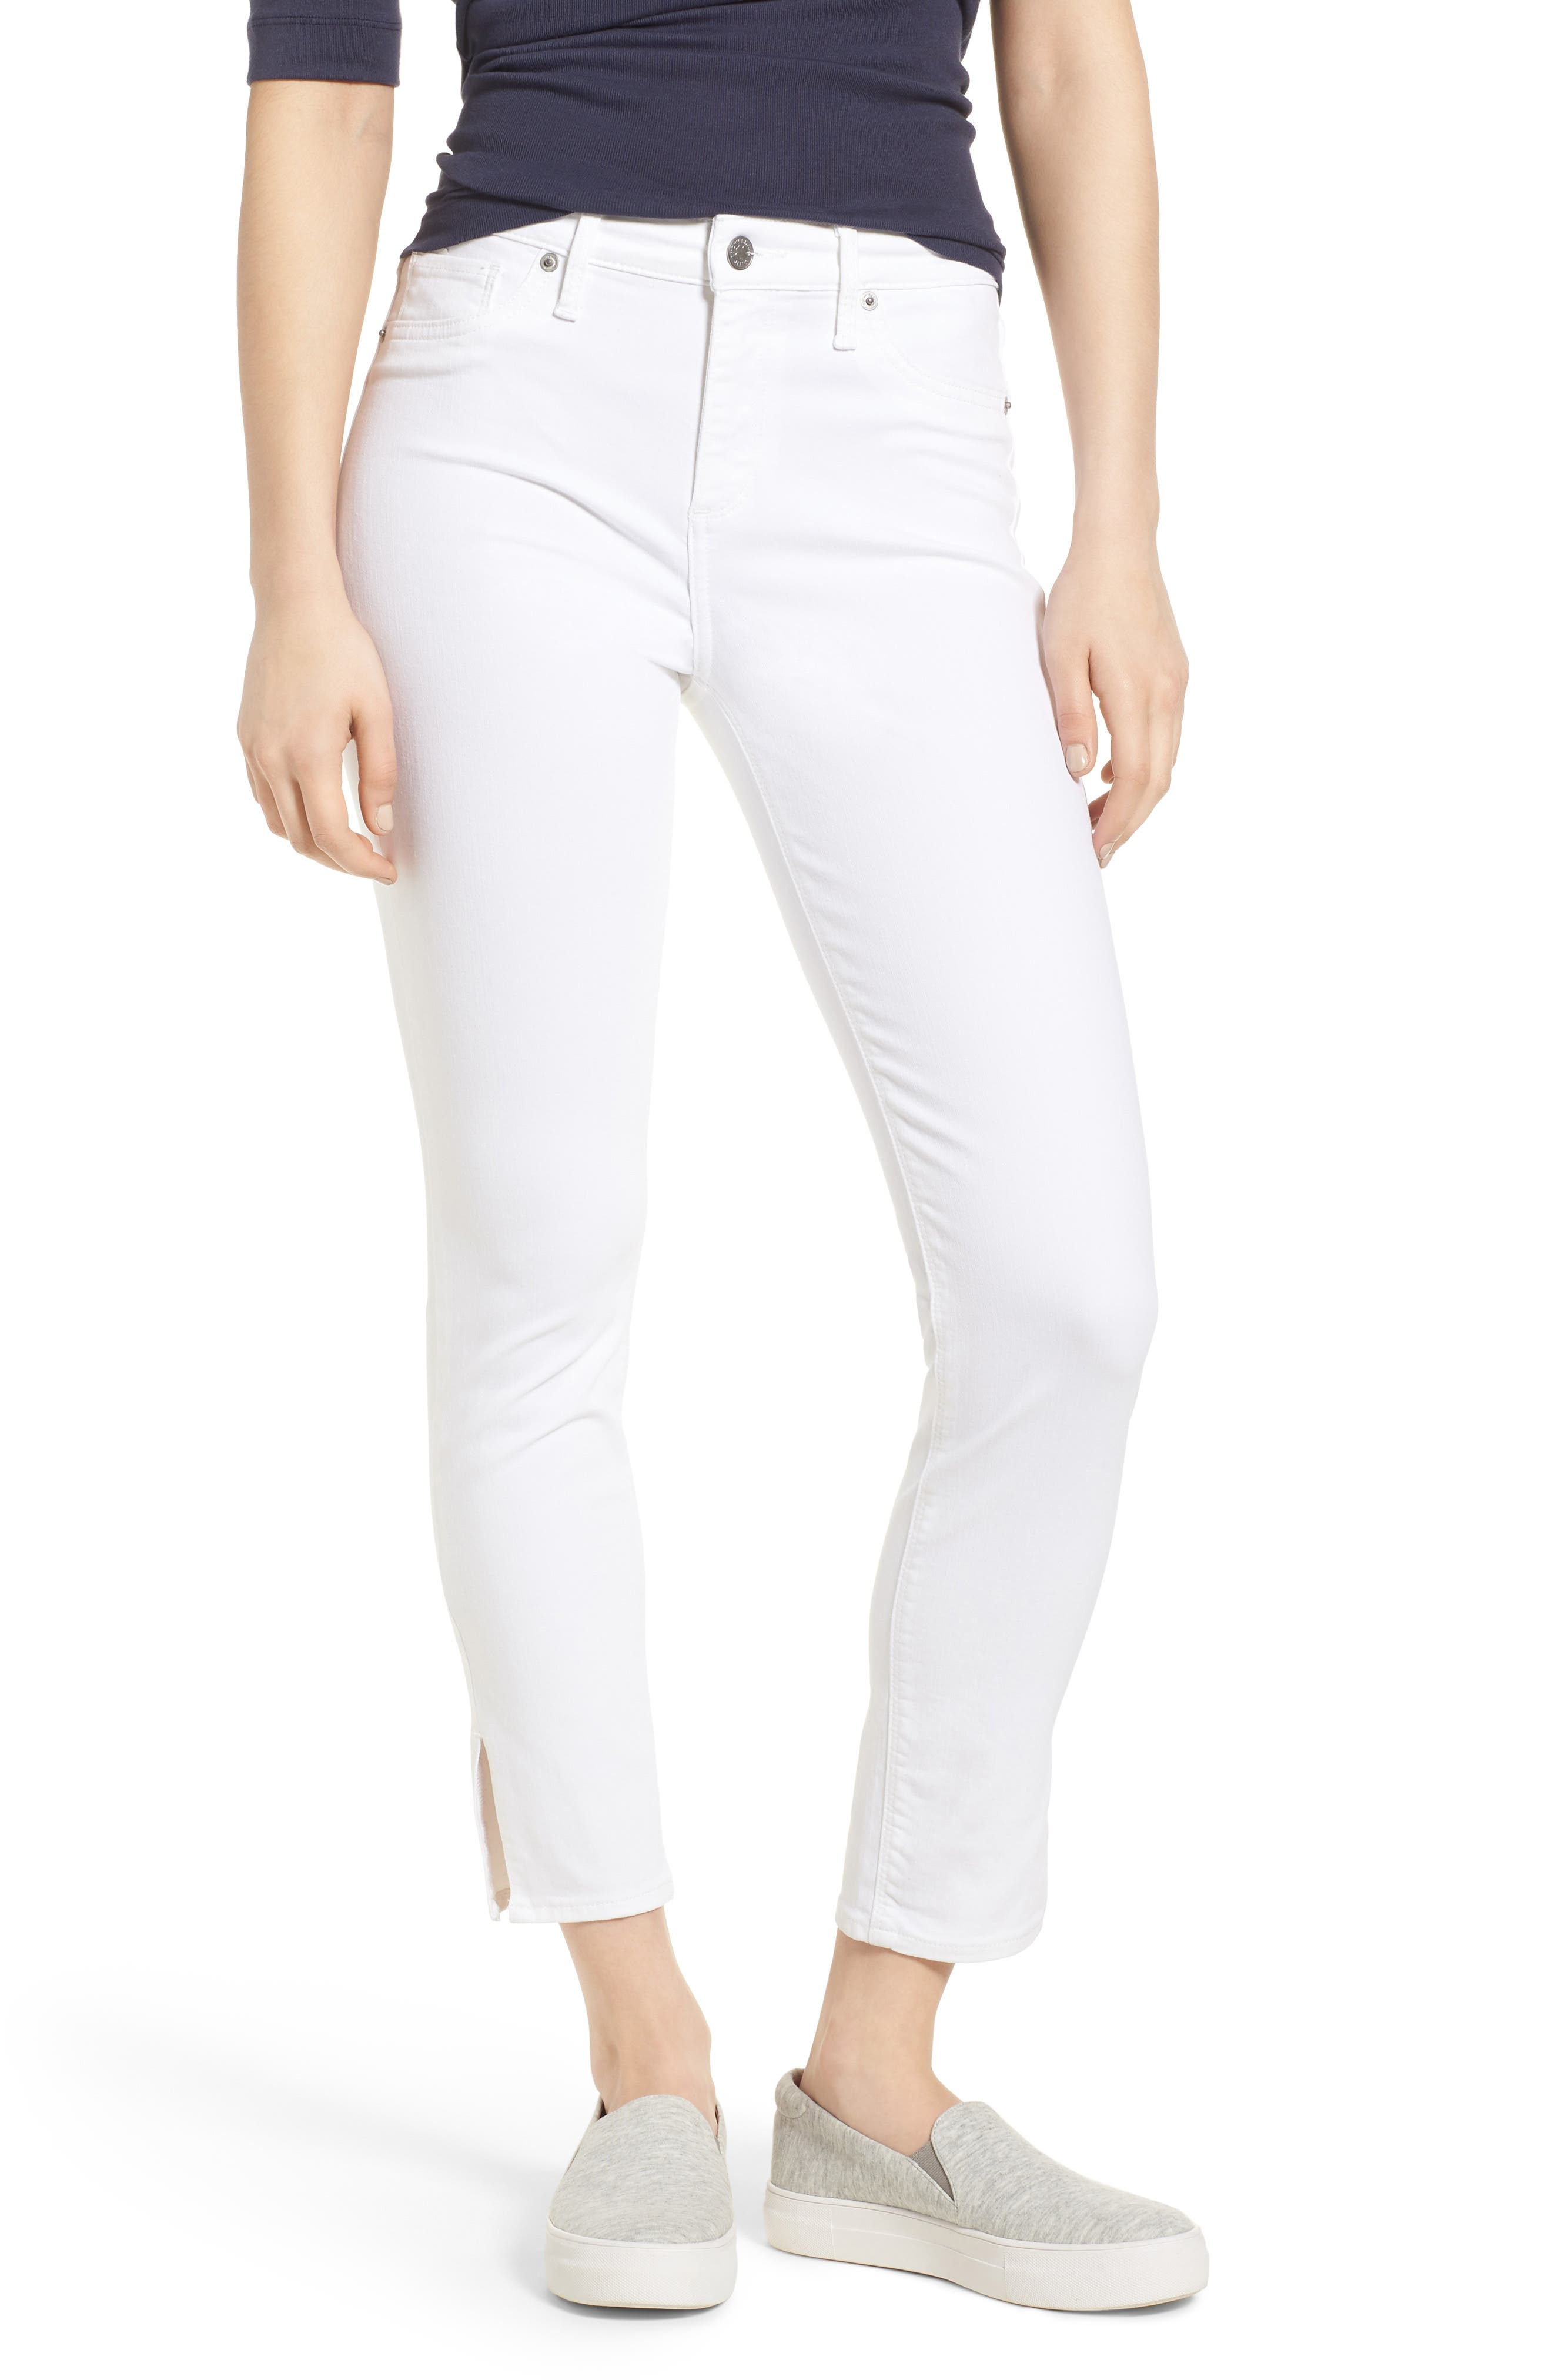 Ava Skinny White Jeans,                             Main thumbnail 1, color,                             Clean White